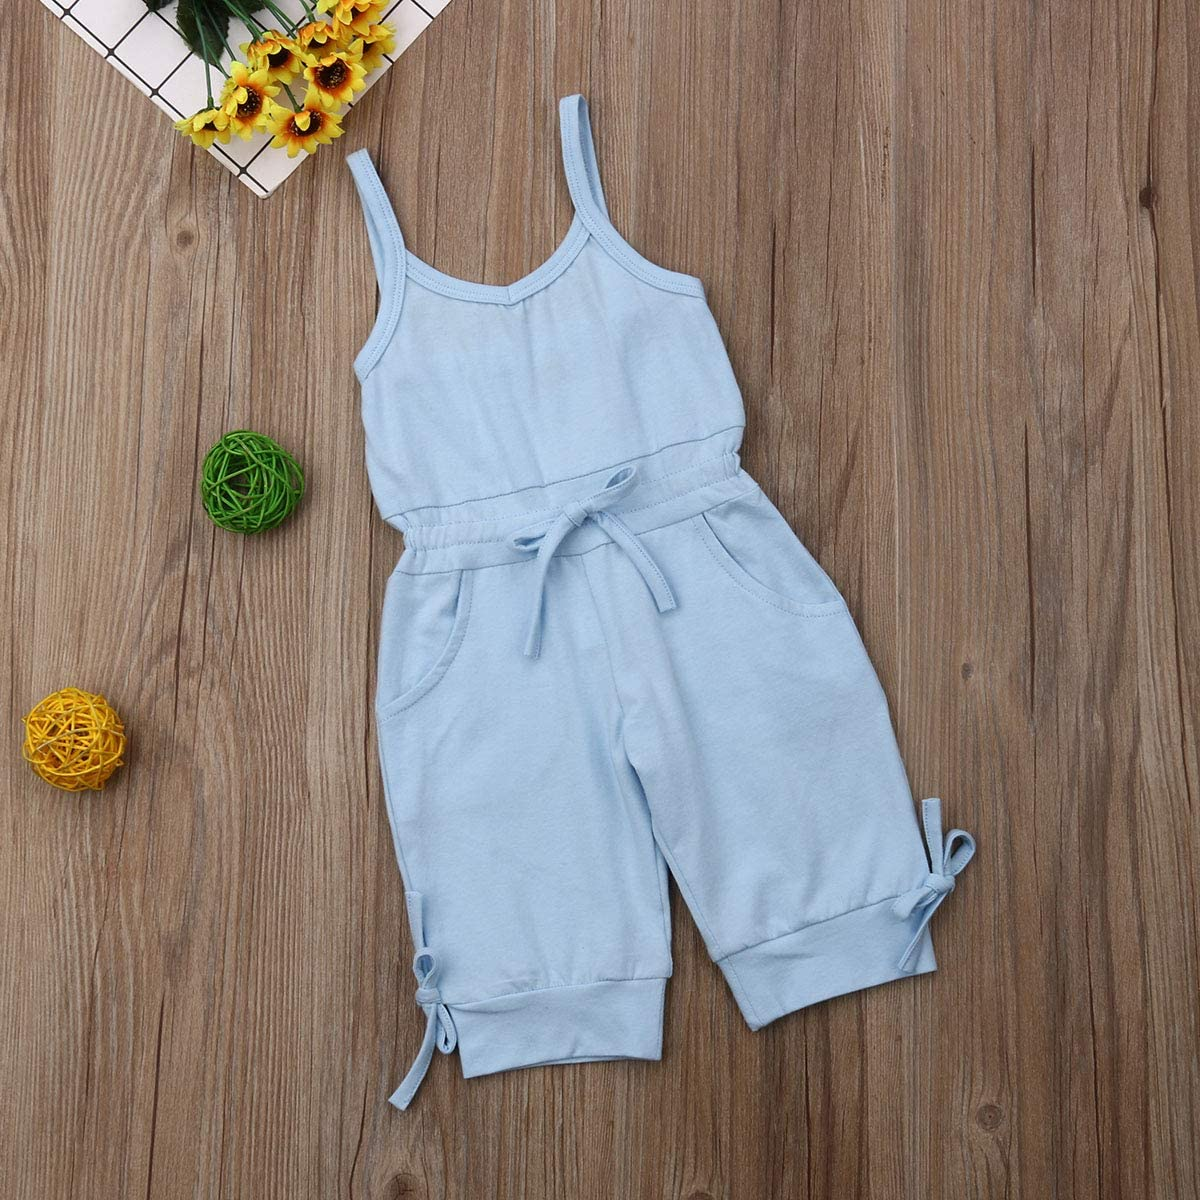 Balaflyie Toddler Girls Jumpsuit Romper Solid Color Strap One Piece Overall Summer Outfits